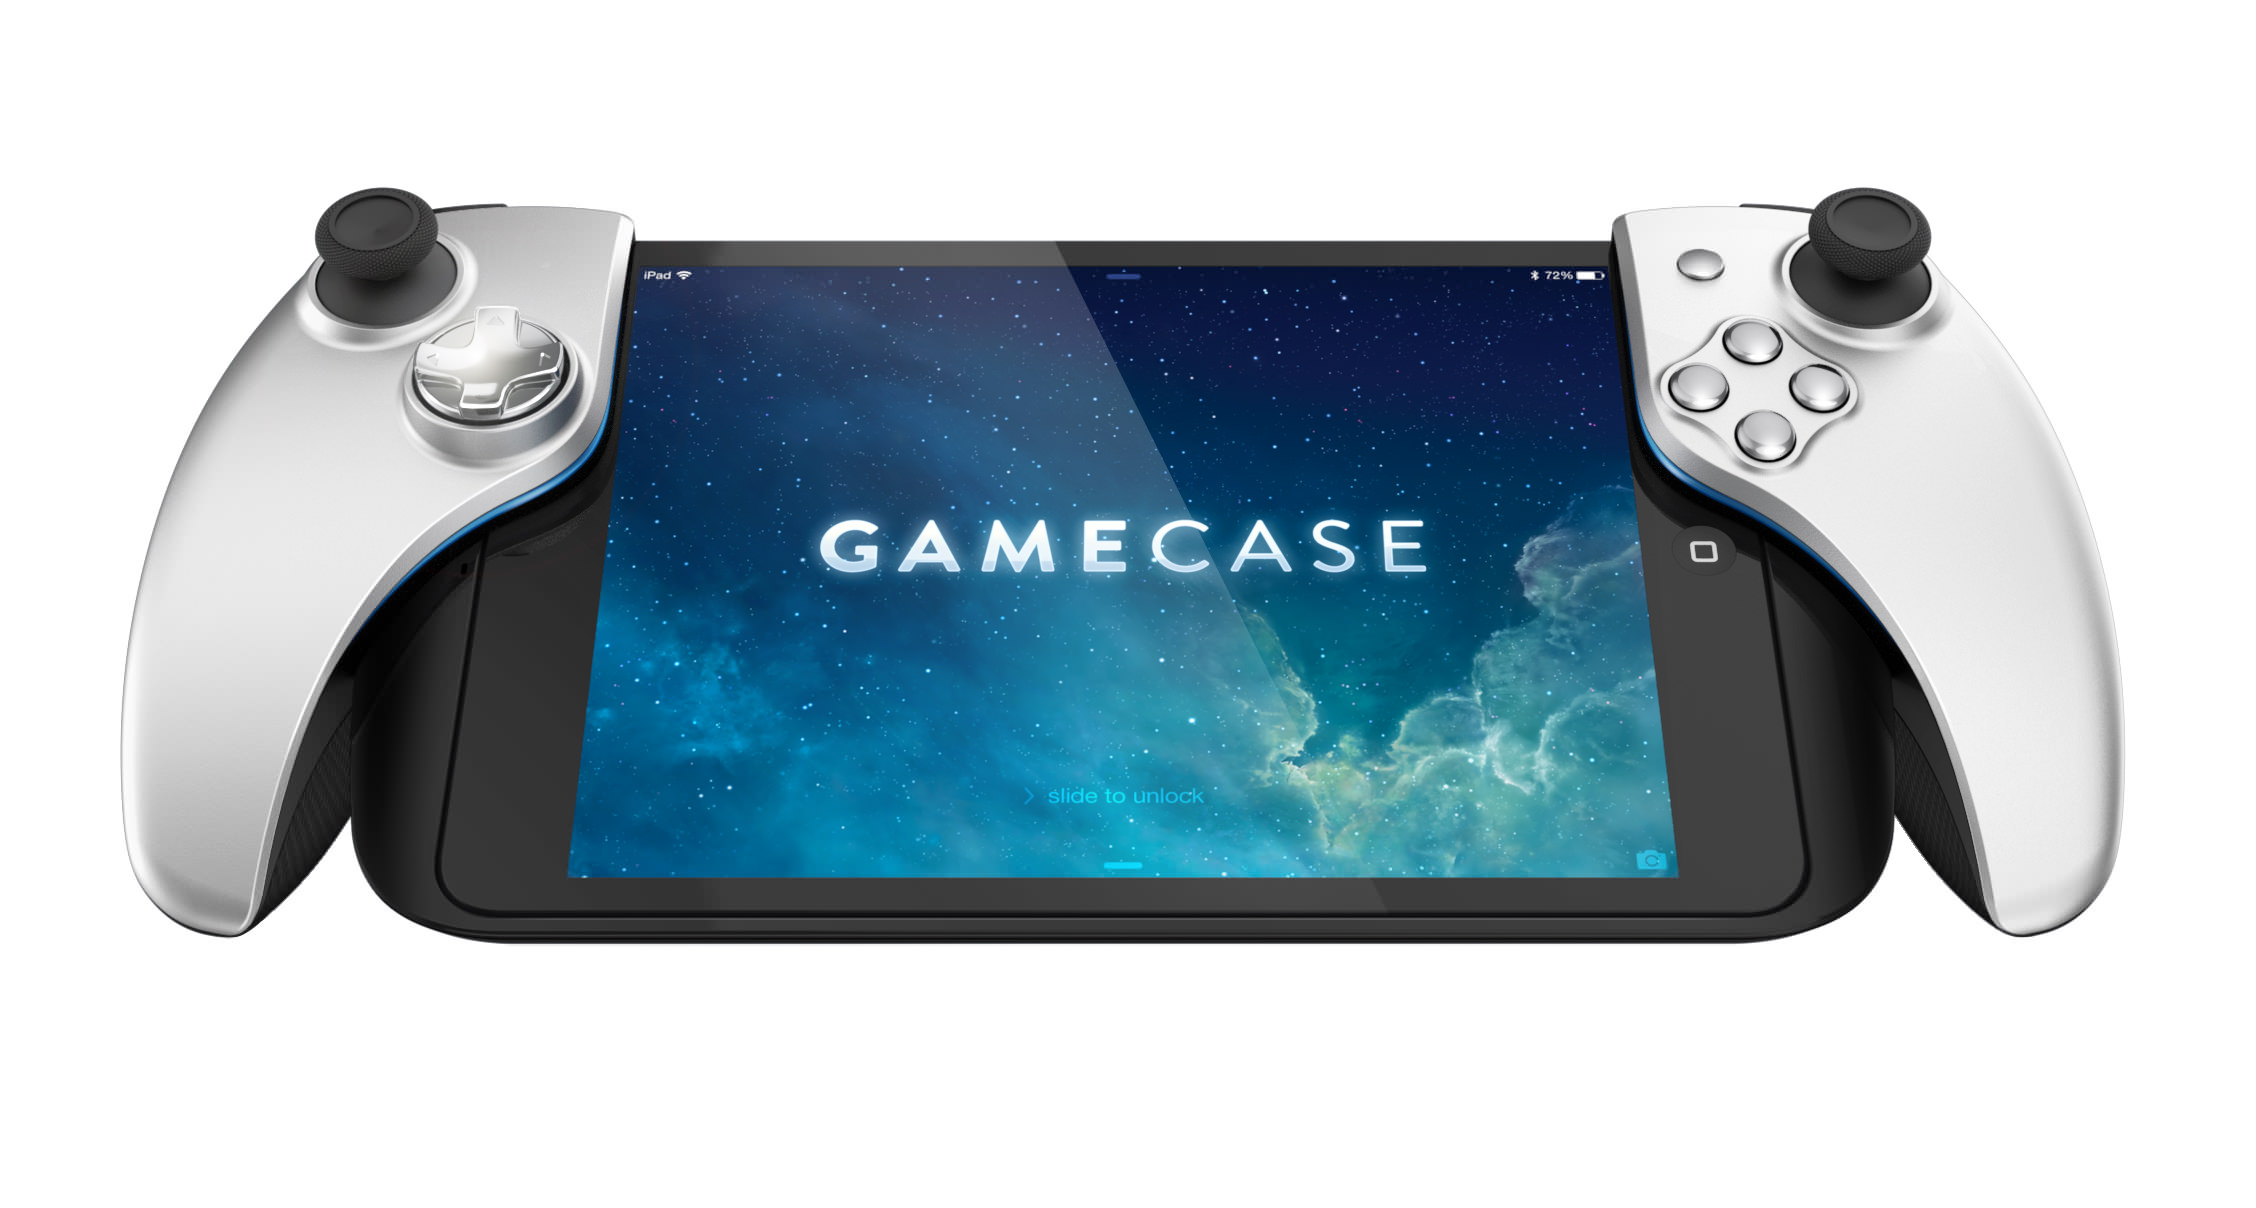 GameCase for iOS